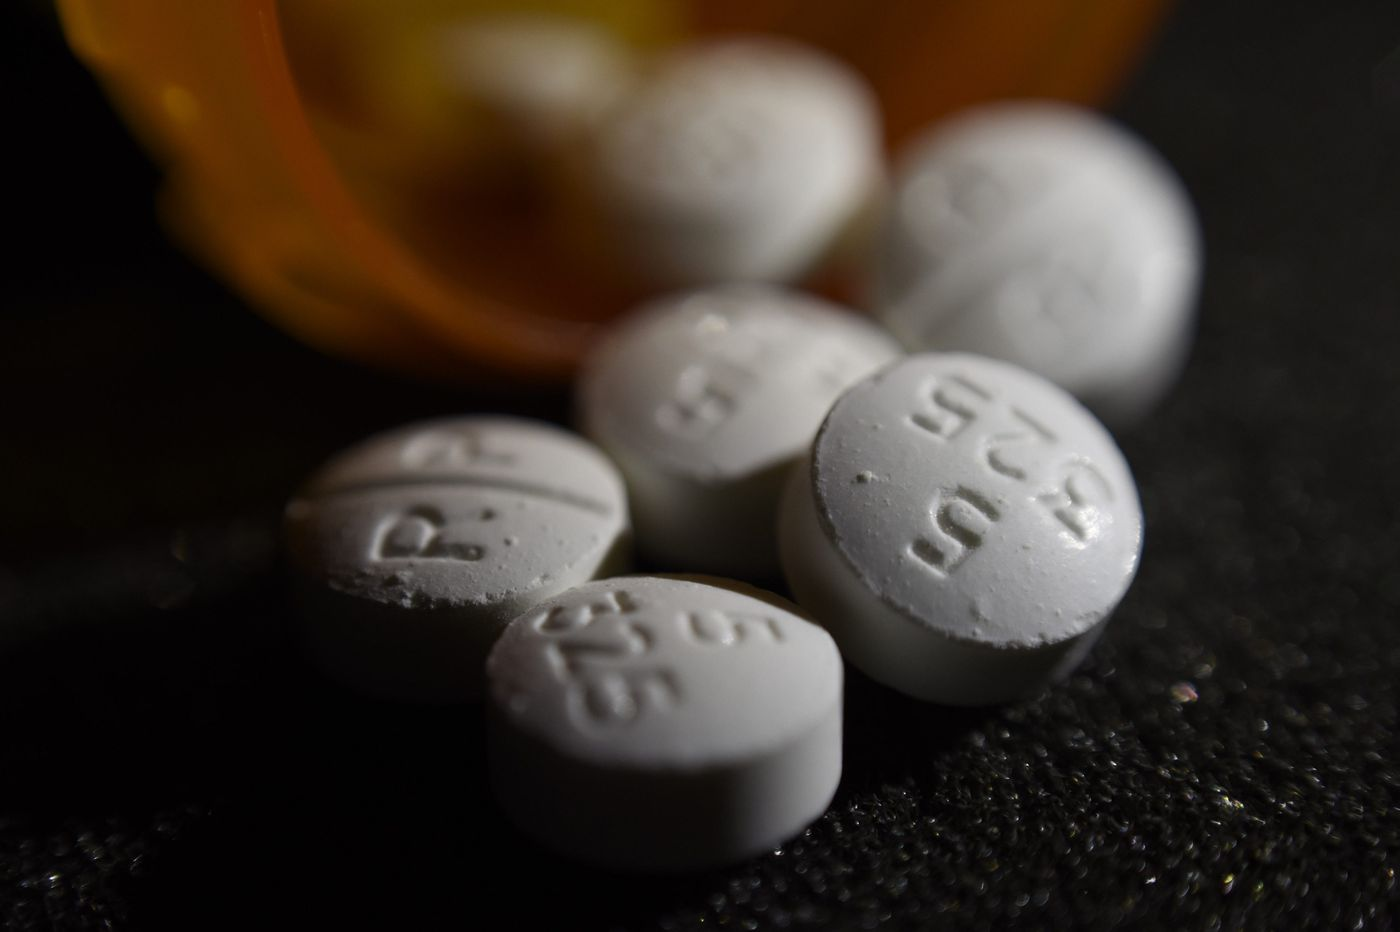 Can we relieve suffering, avoid drug misuse — and not become 'opioid phobic'?